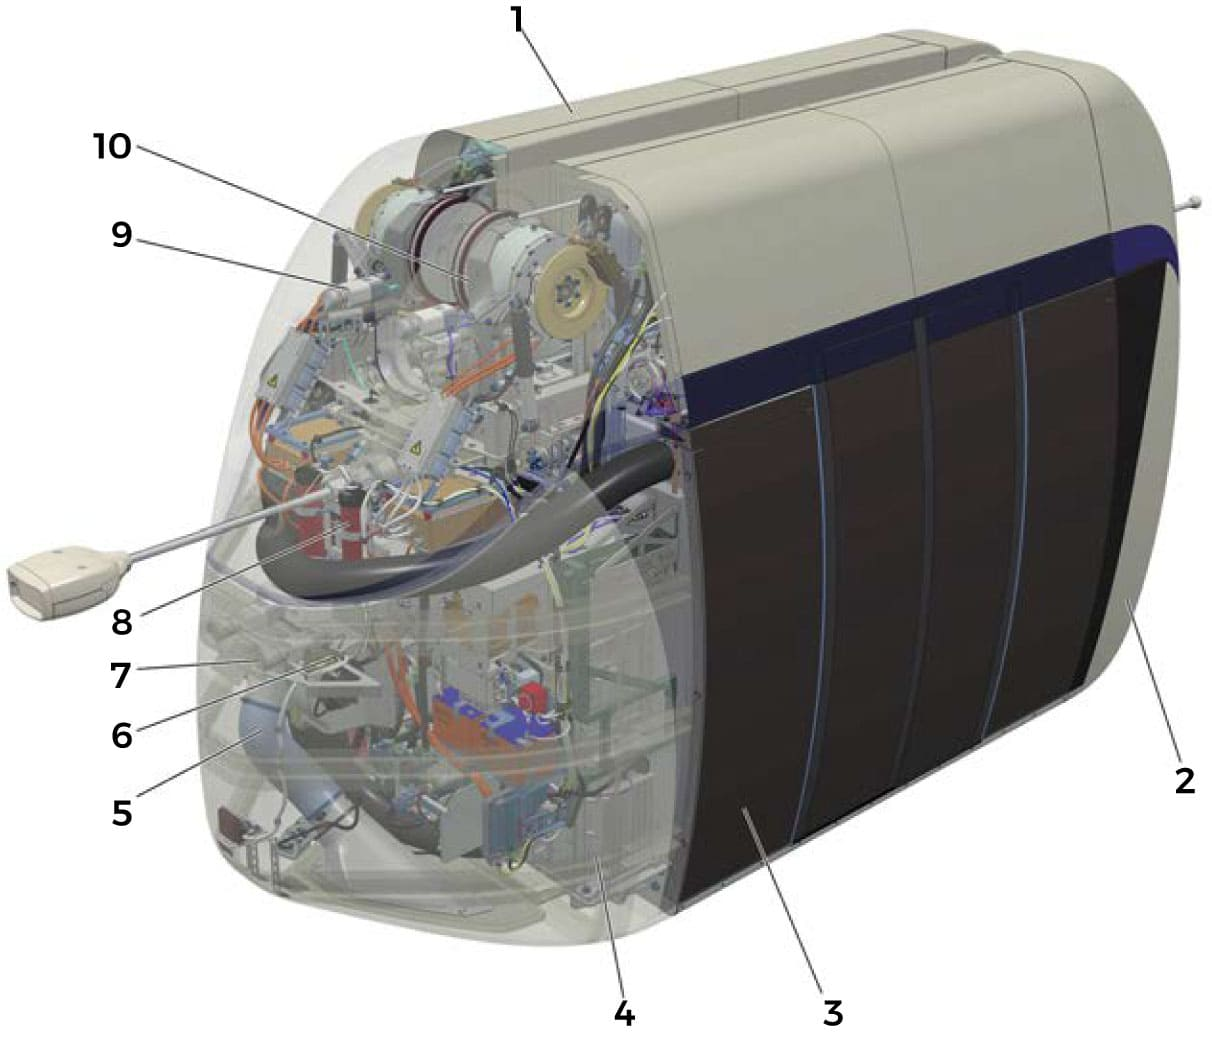 The main assemblies of uCar are the traction module